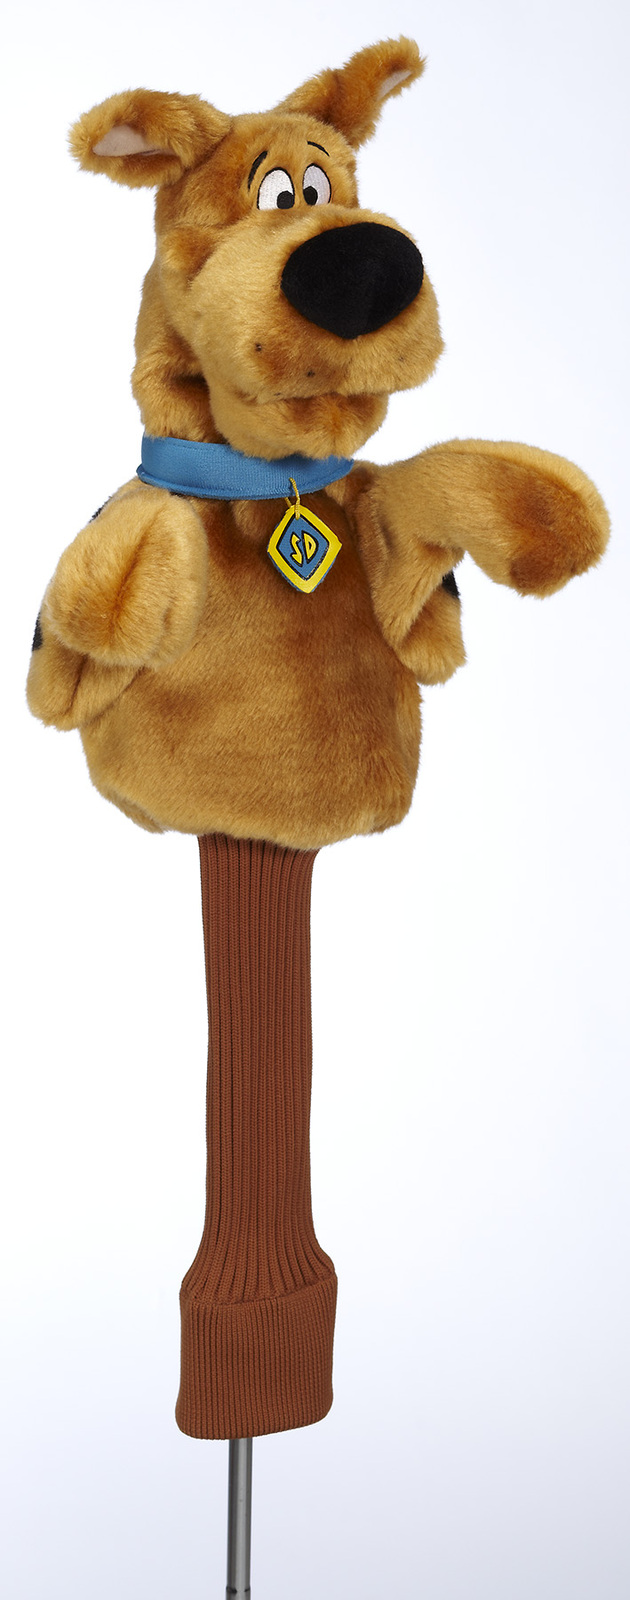 Primary image for Scooby Doo Full Body Golf 460cc Headcover